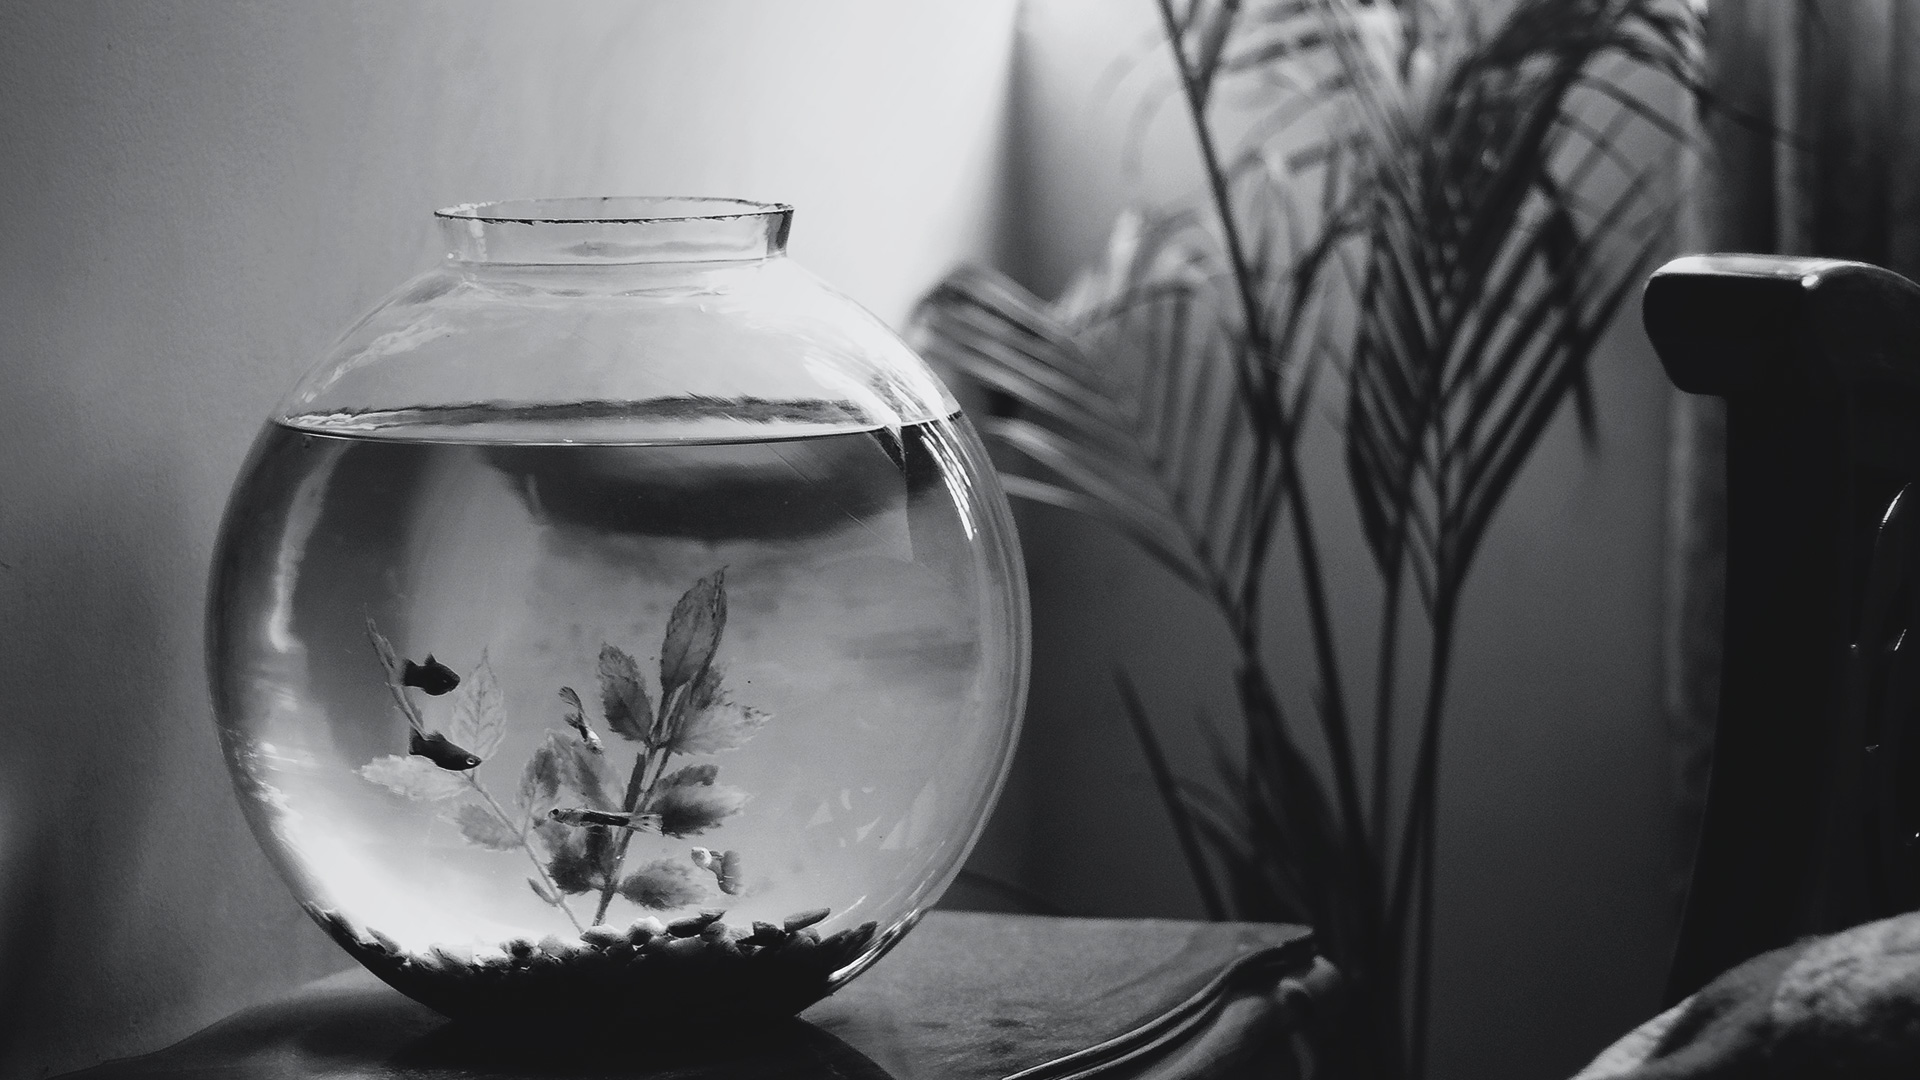 Lessons from the Fishbowl